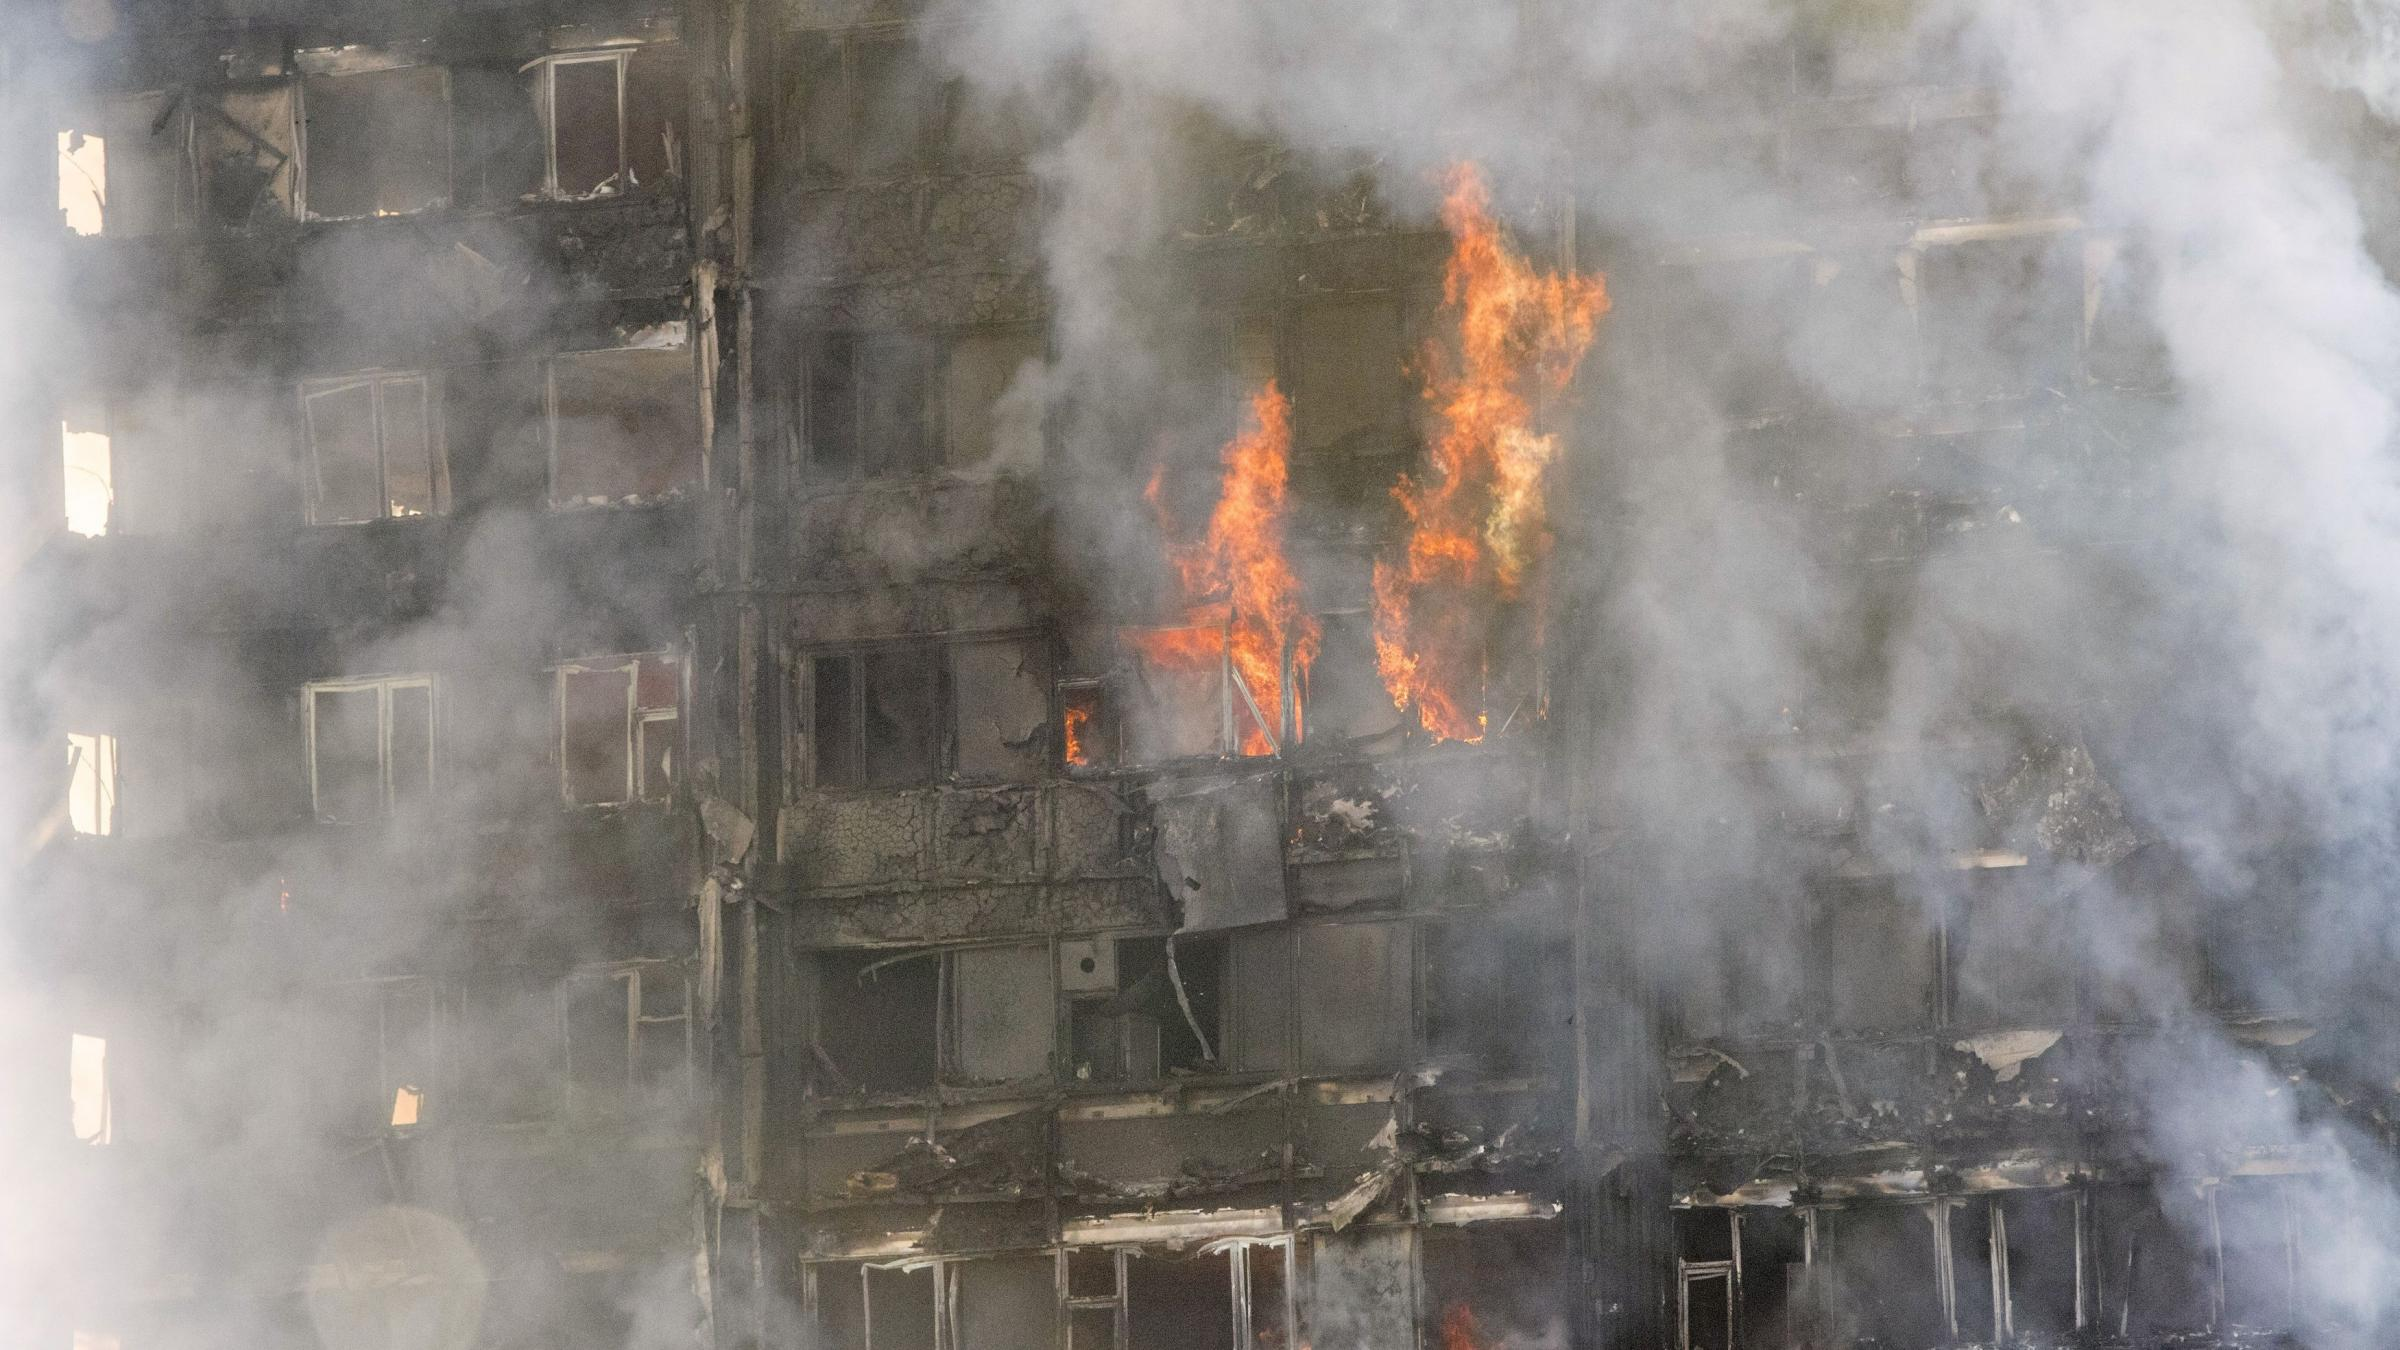 London Fire: Baby thrown from ninth floor, saved by man